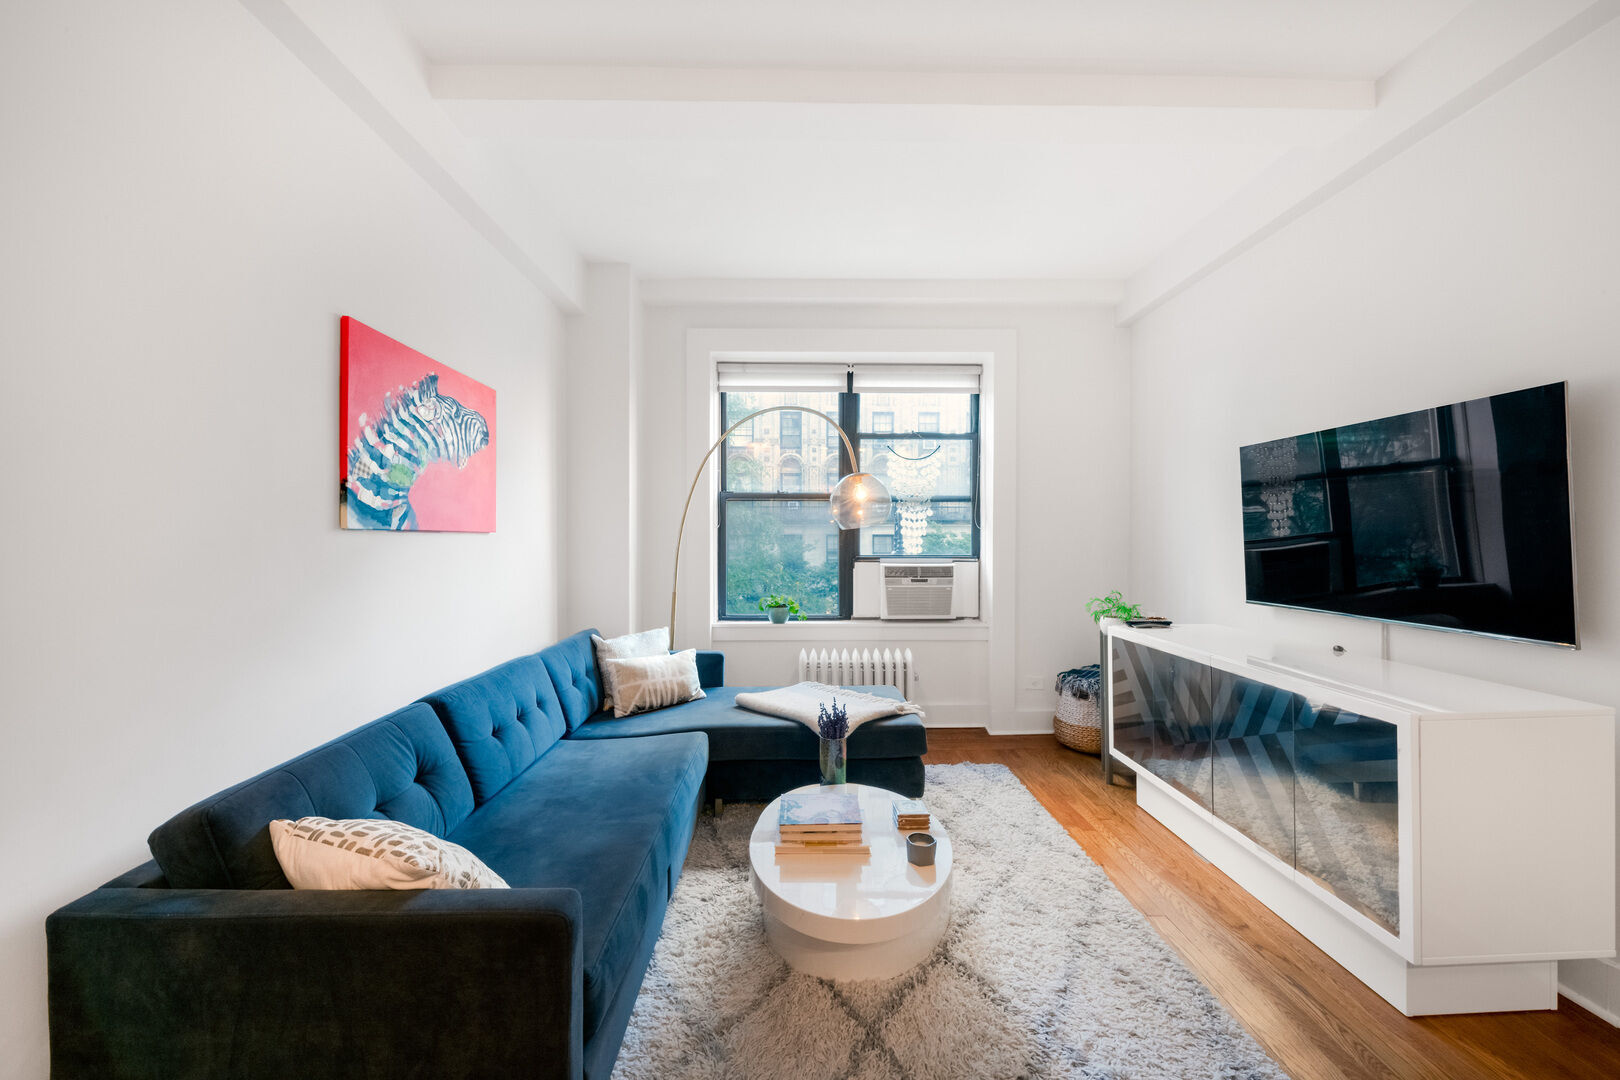 Apartment for sale at 116 West 72nd Street, Apt 3-C